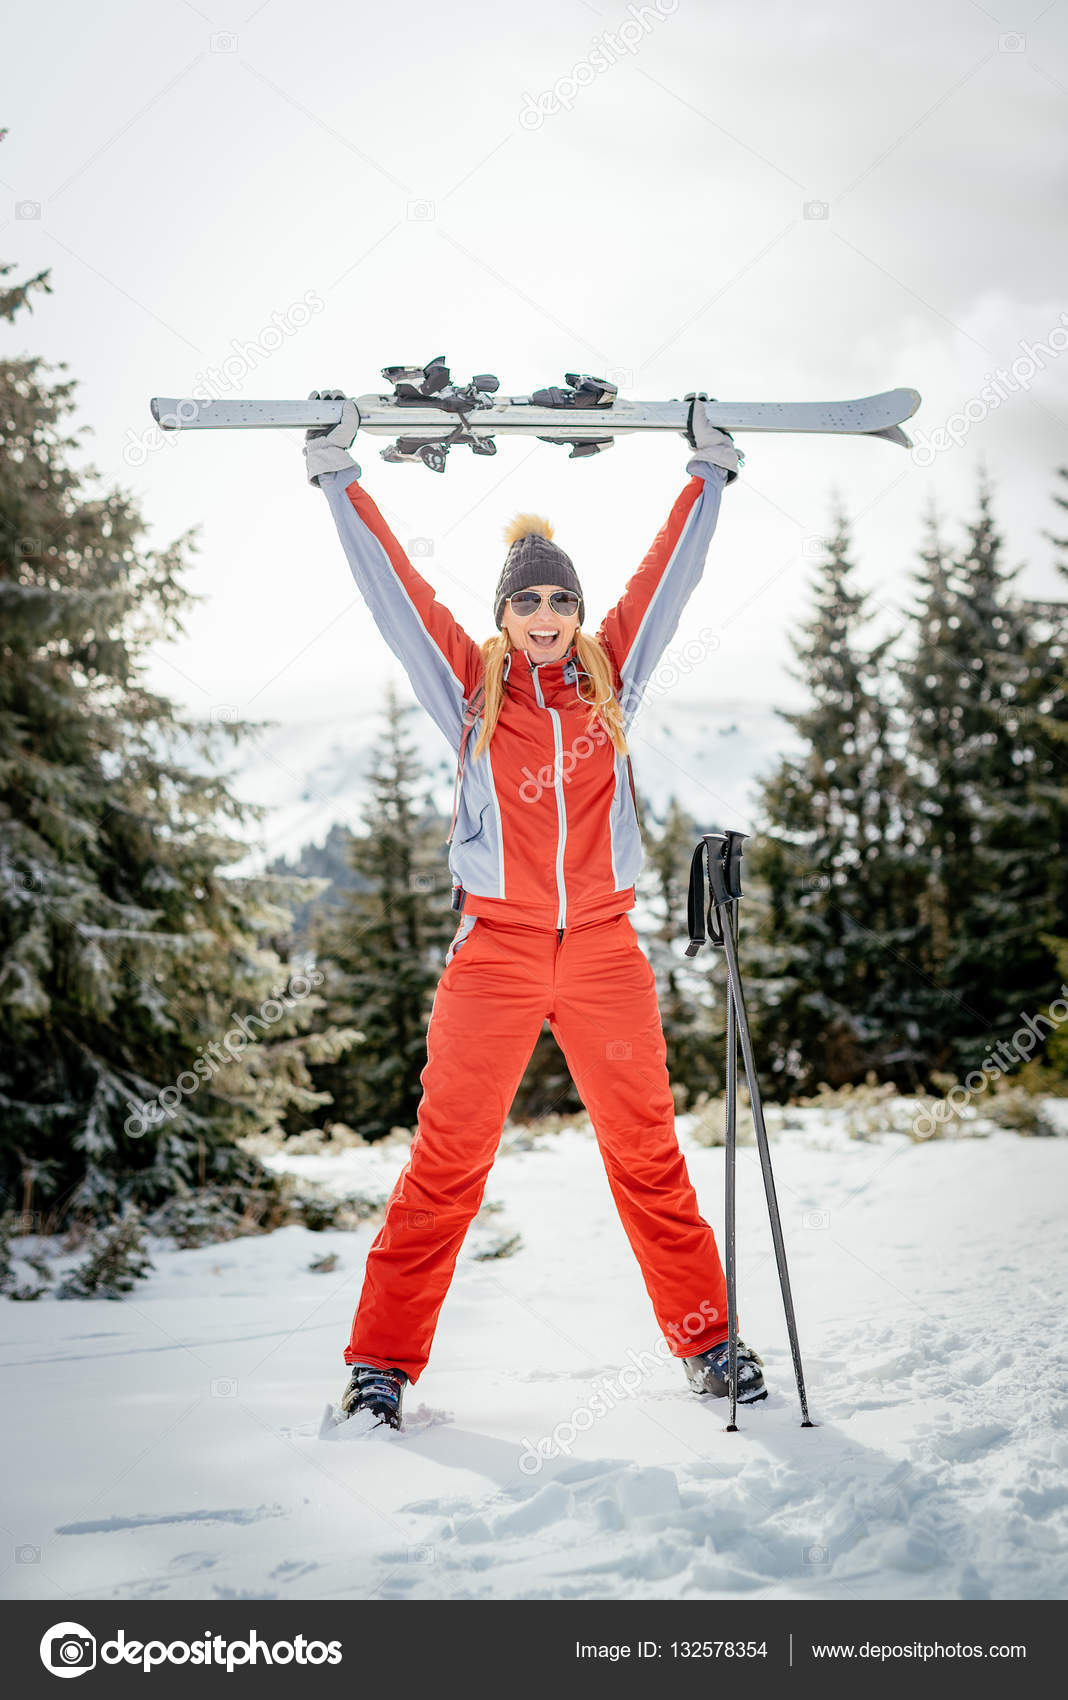 Pictures: funny skiing | Funny Skier Girl — Stock Photo